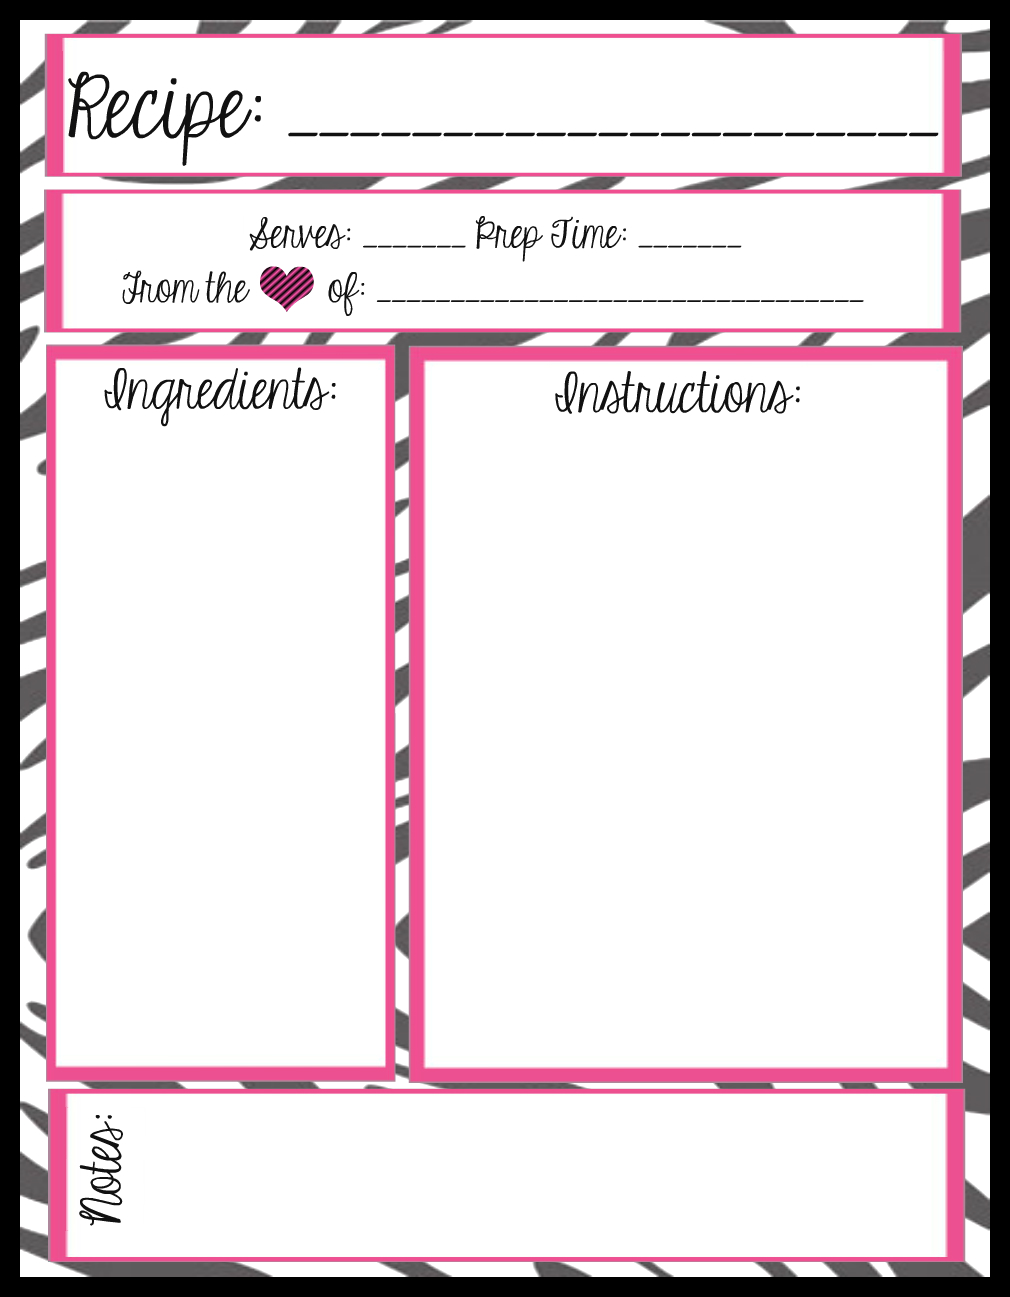 template for recipes in word - mesa 39 s place full page recipe templates free printables